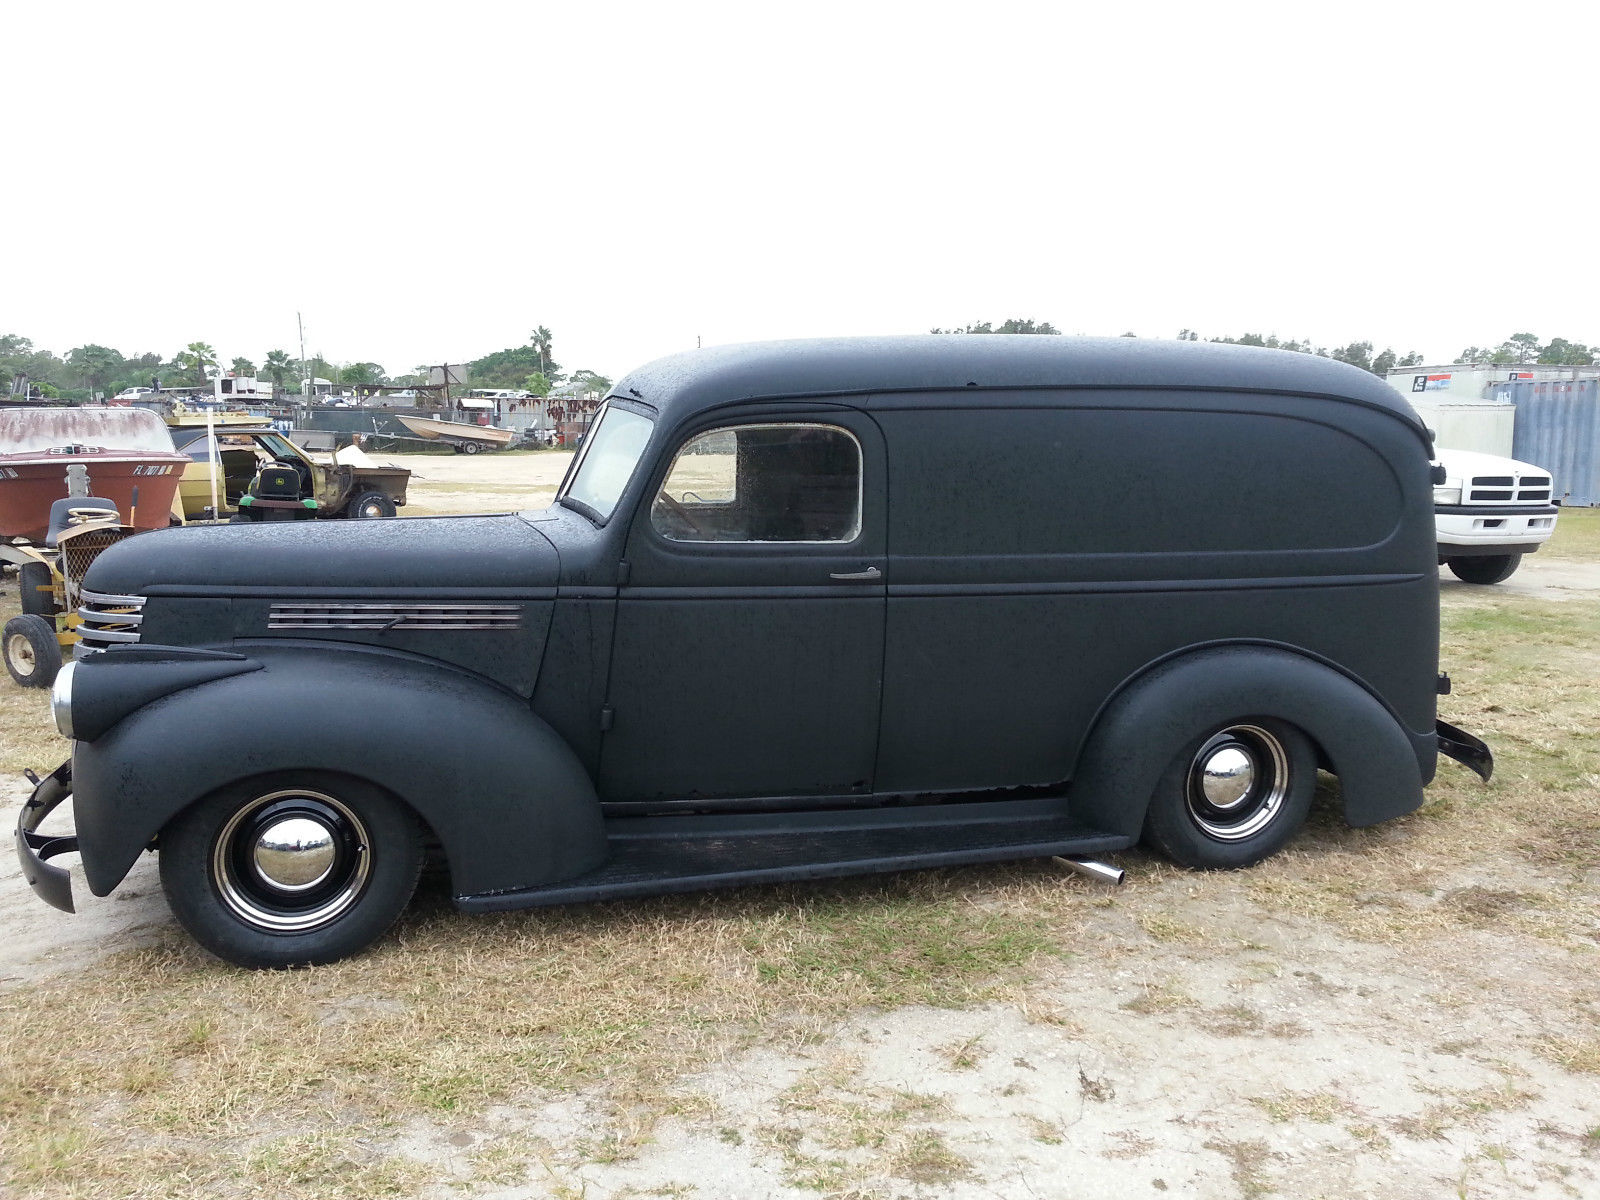 1941 Panel Truck Wagon Sedan Delivery Look Super Rare Classic Plymouth Station Chevrolet Other